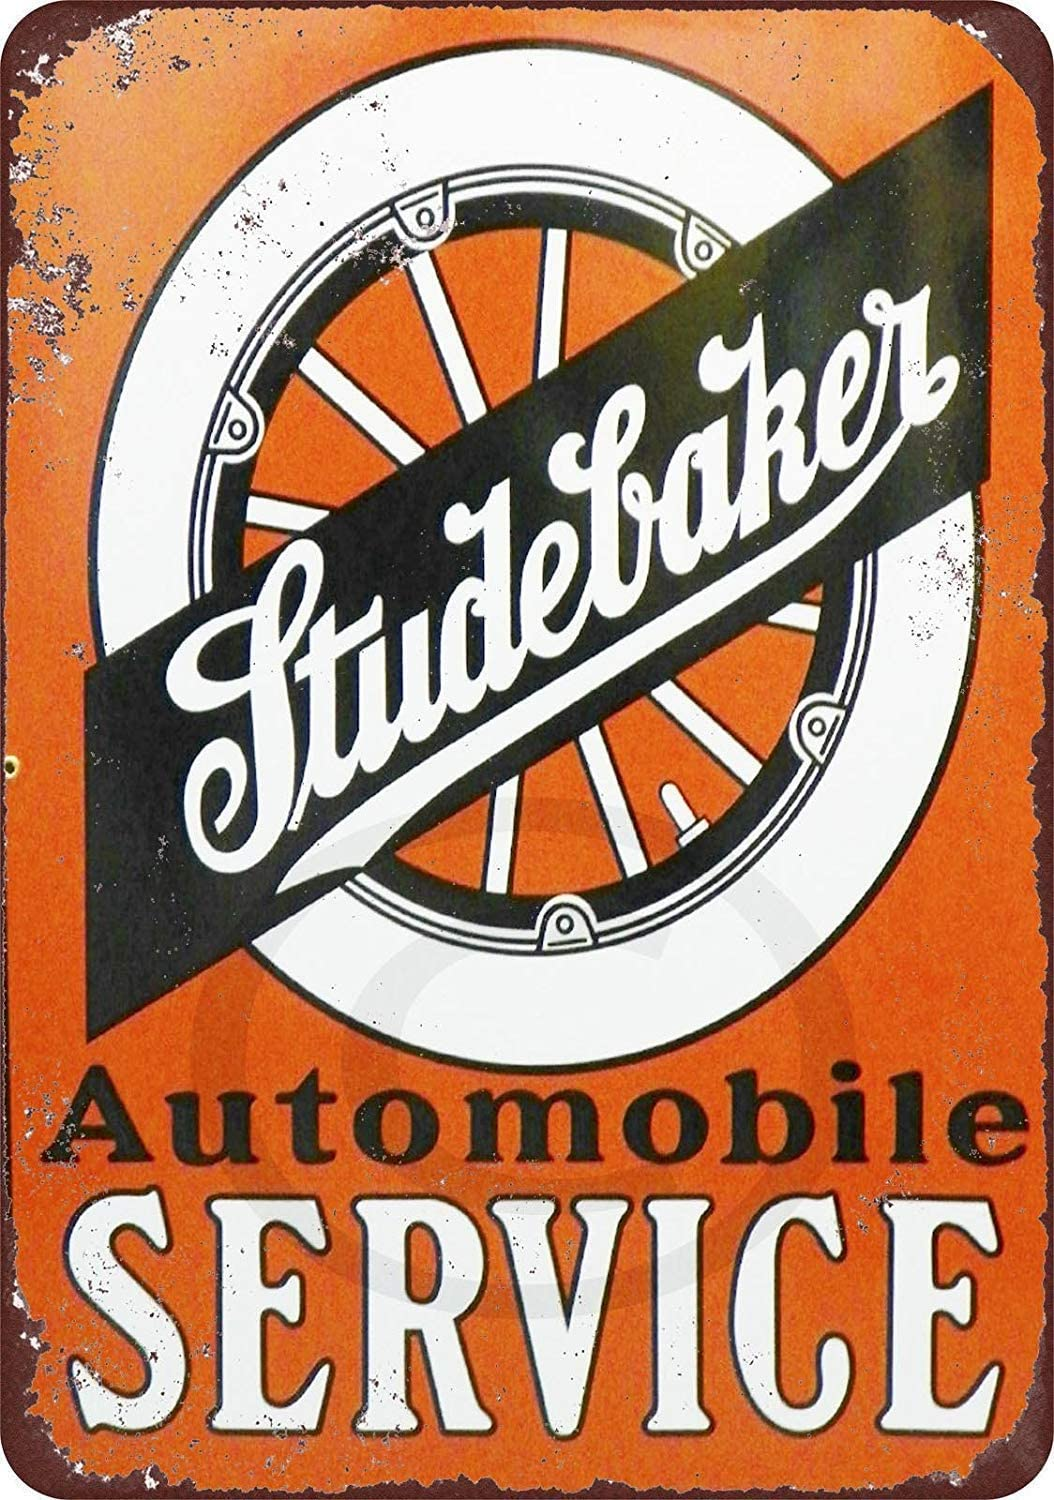 LPLED Wall Decor Sign Studebaker Automobile Service Rustic Vintage Aluminum Metal Sign 8x12 Inches (W4071)